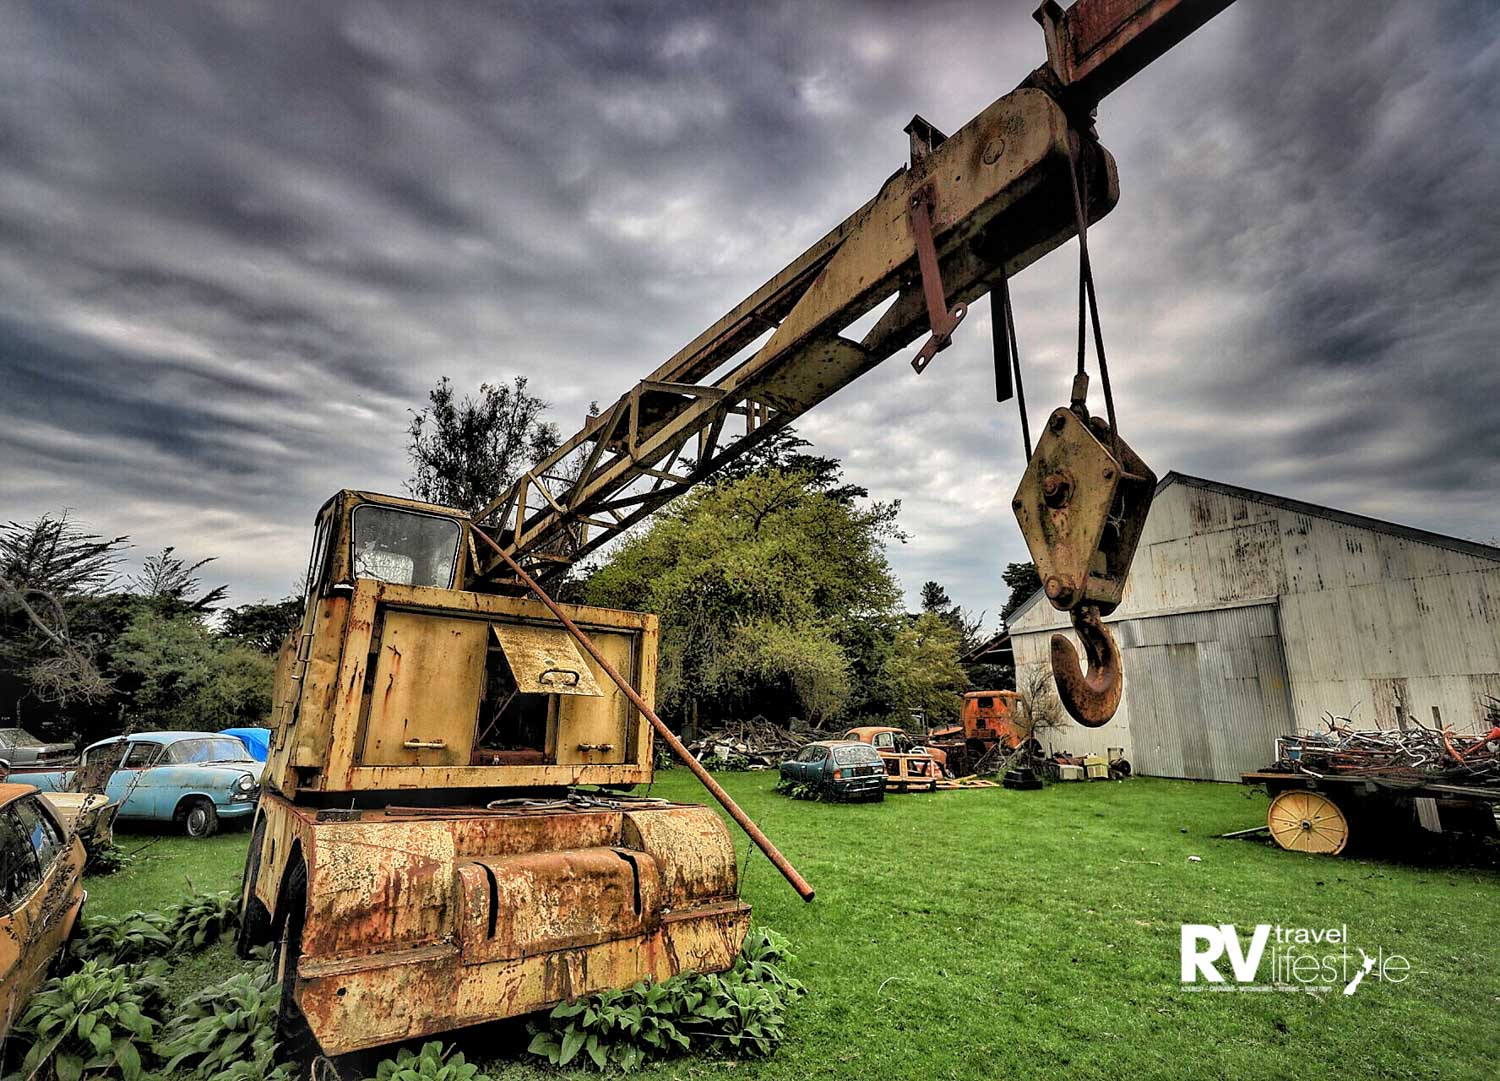 Wherever you look there is machinery and equipment from yesteryear